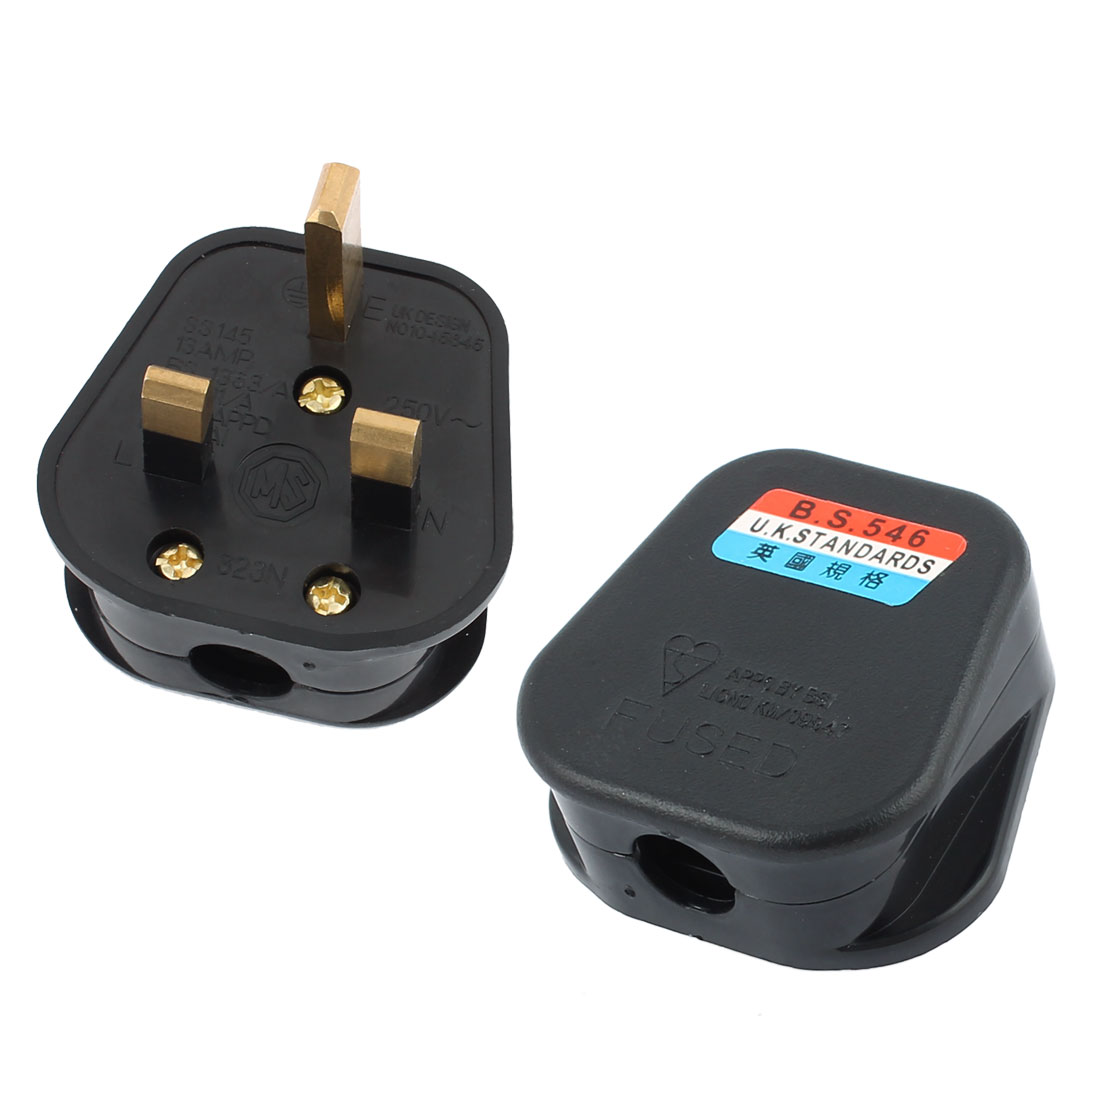 AC 250V UK Plug Fused Power Outlet Rewiring Cord Adapter Connector Black